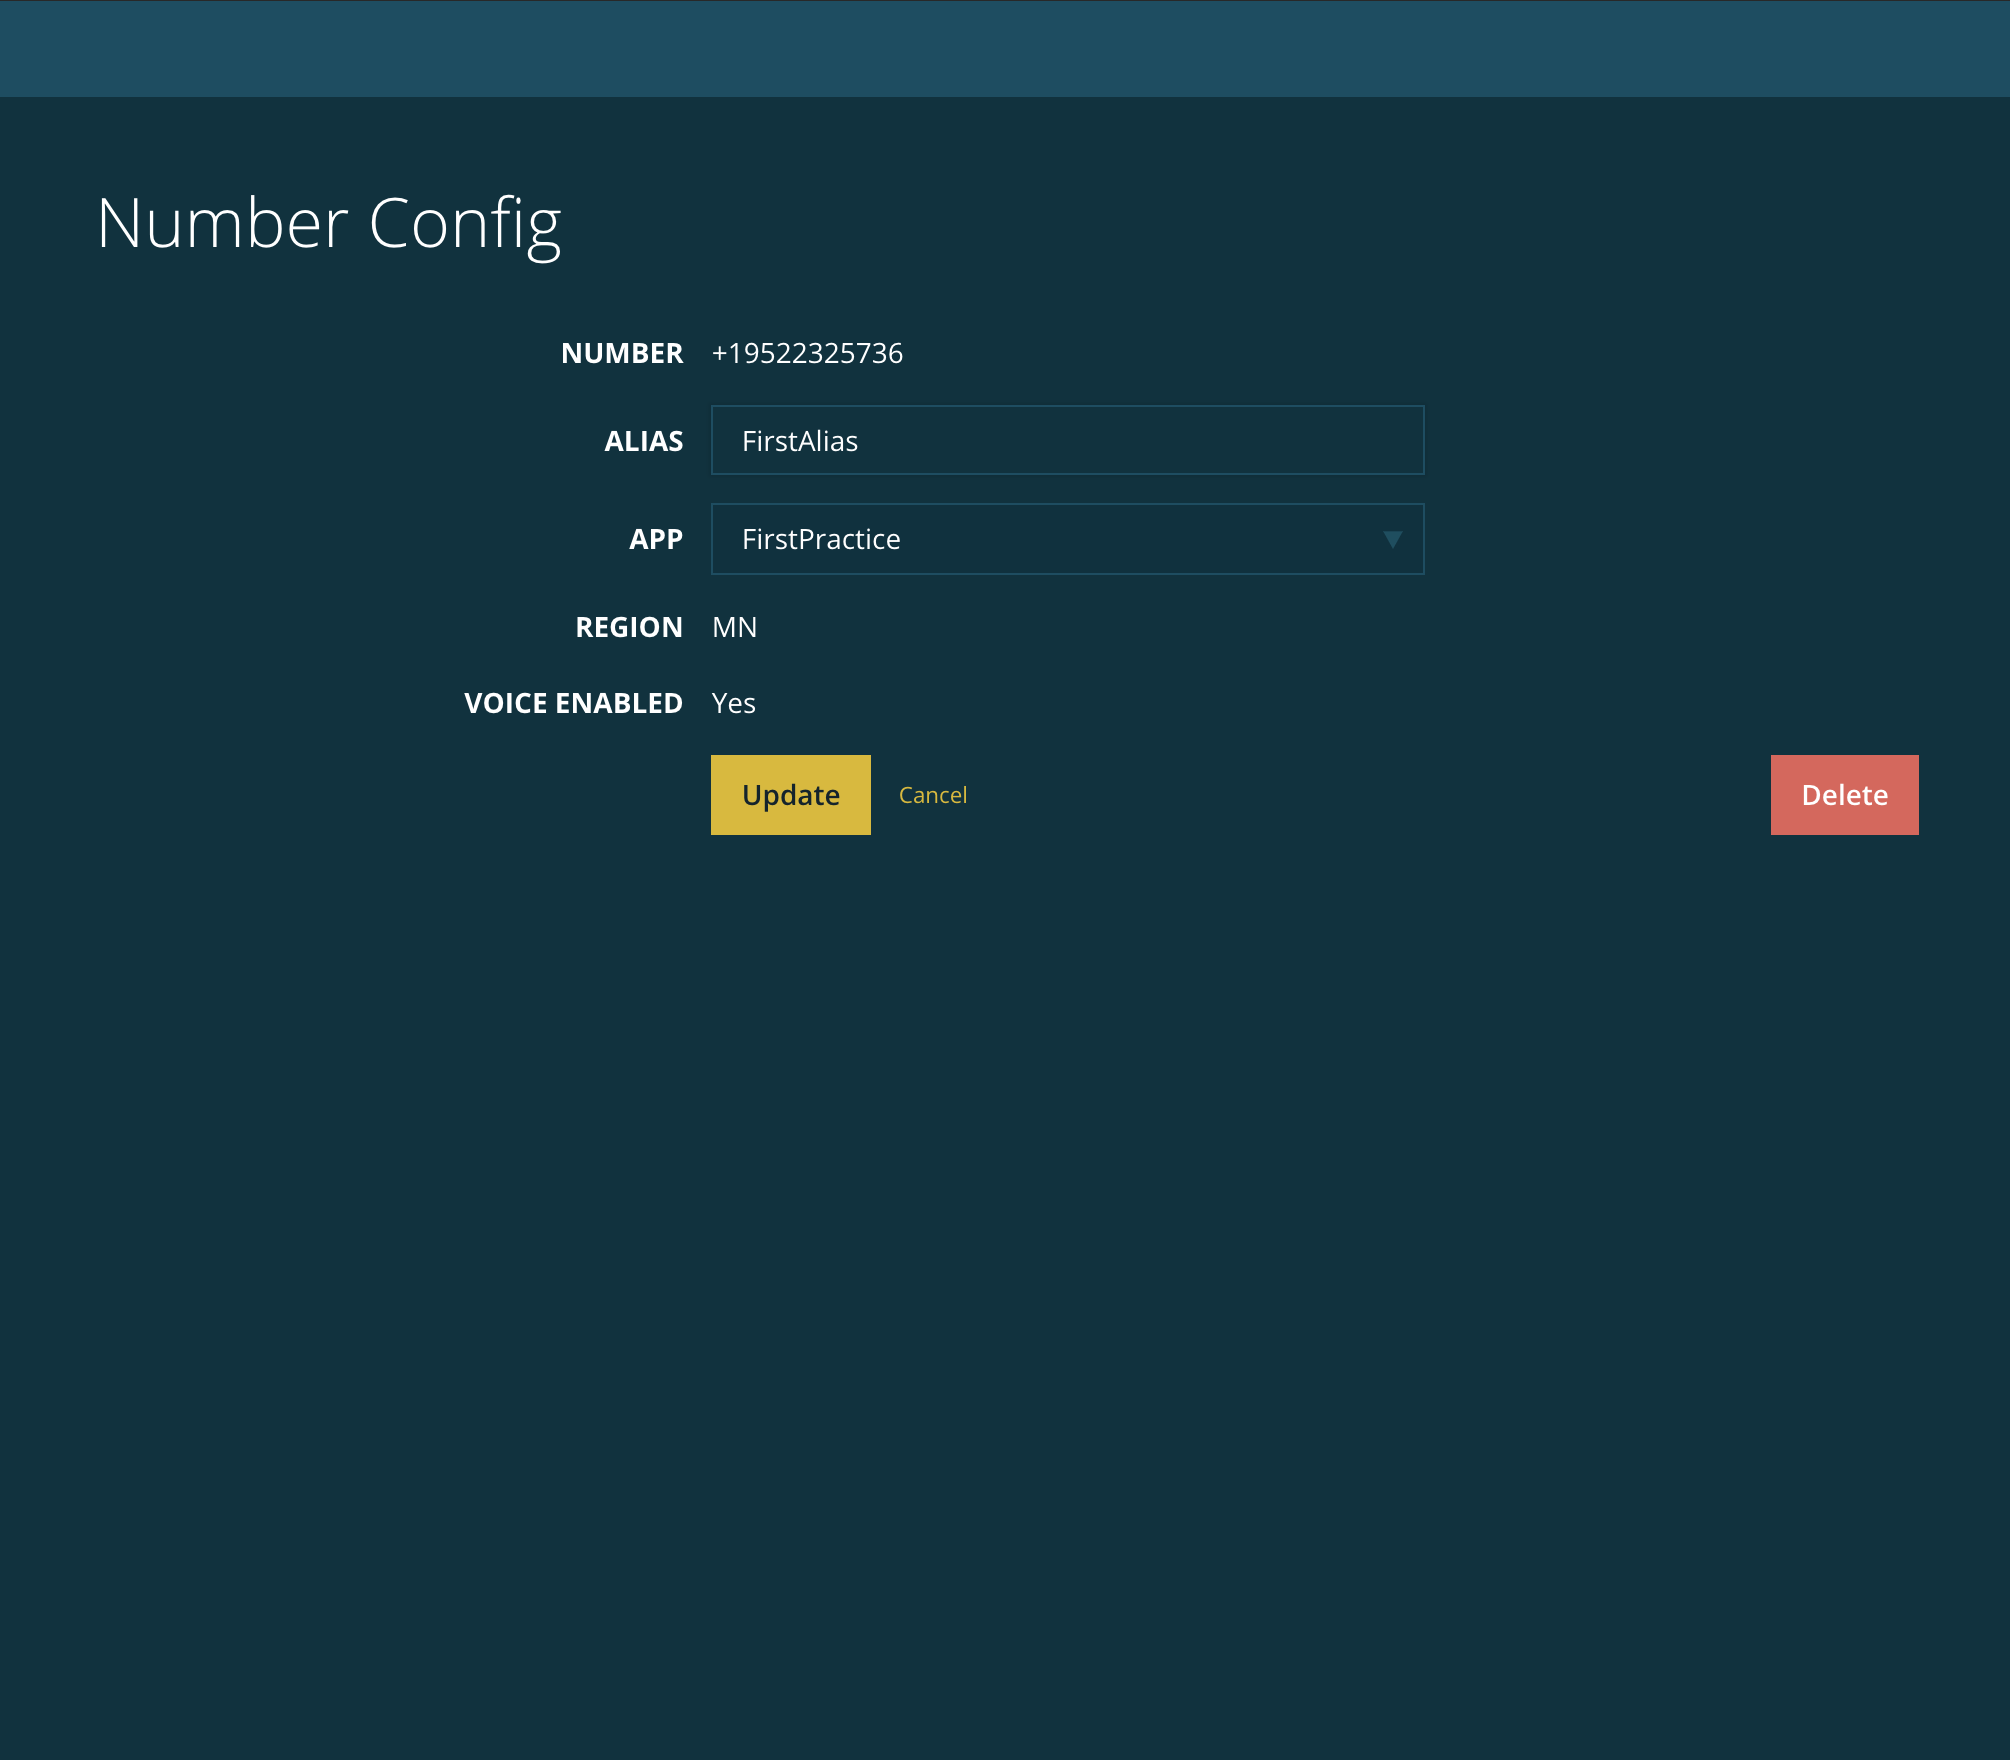 The Number Config page for a number.